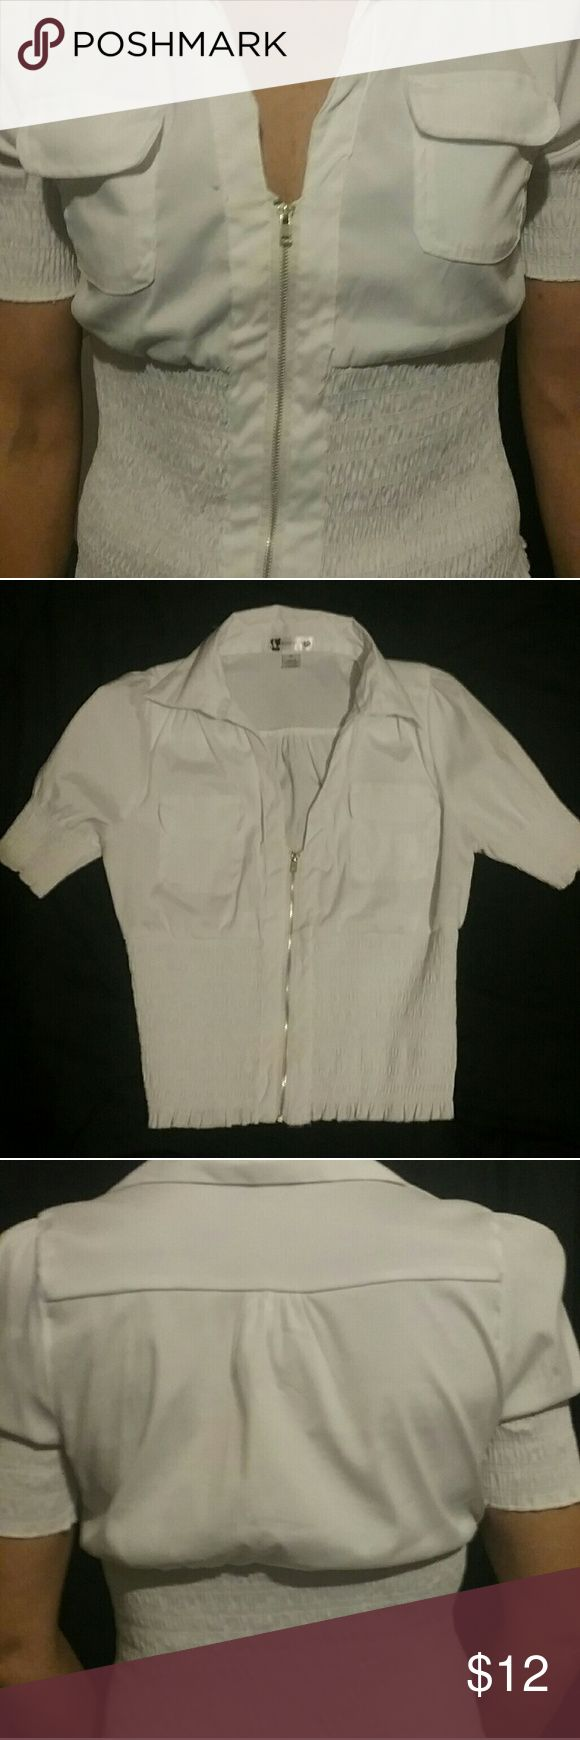 A white zip-up women's blouse size medium A white blouse that  zips up in the front size medium; it bunches on the end of the sleeves and from the start of the stomach down Tops Blouses